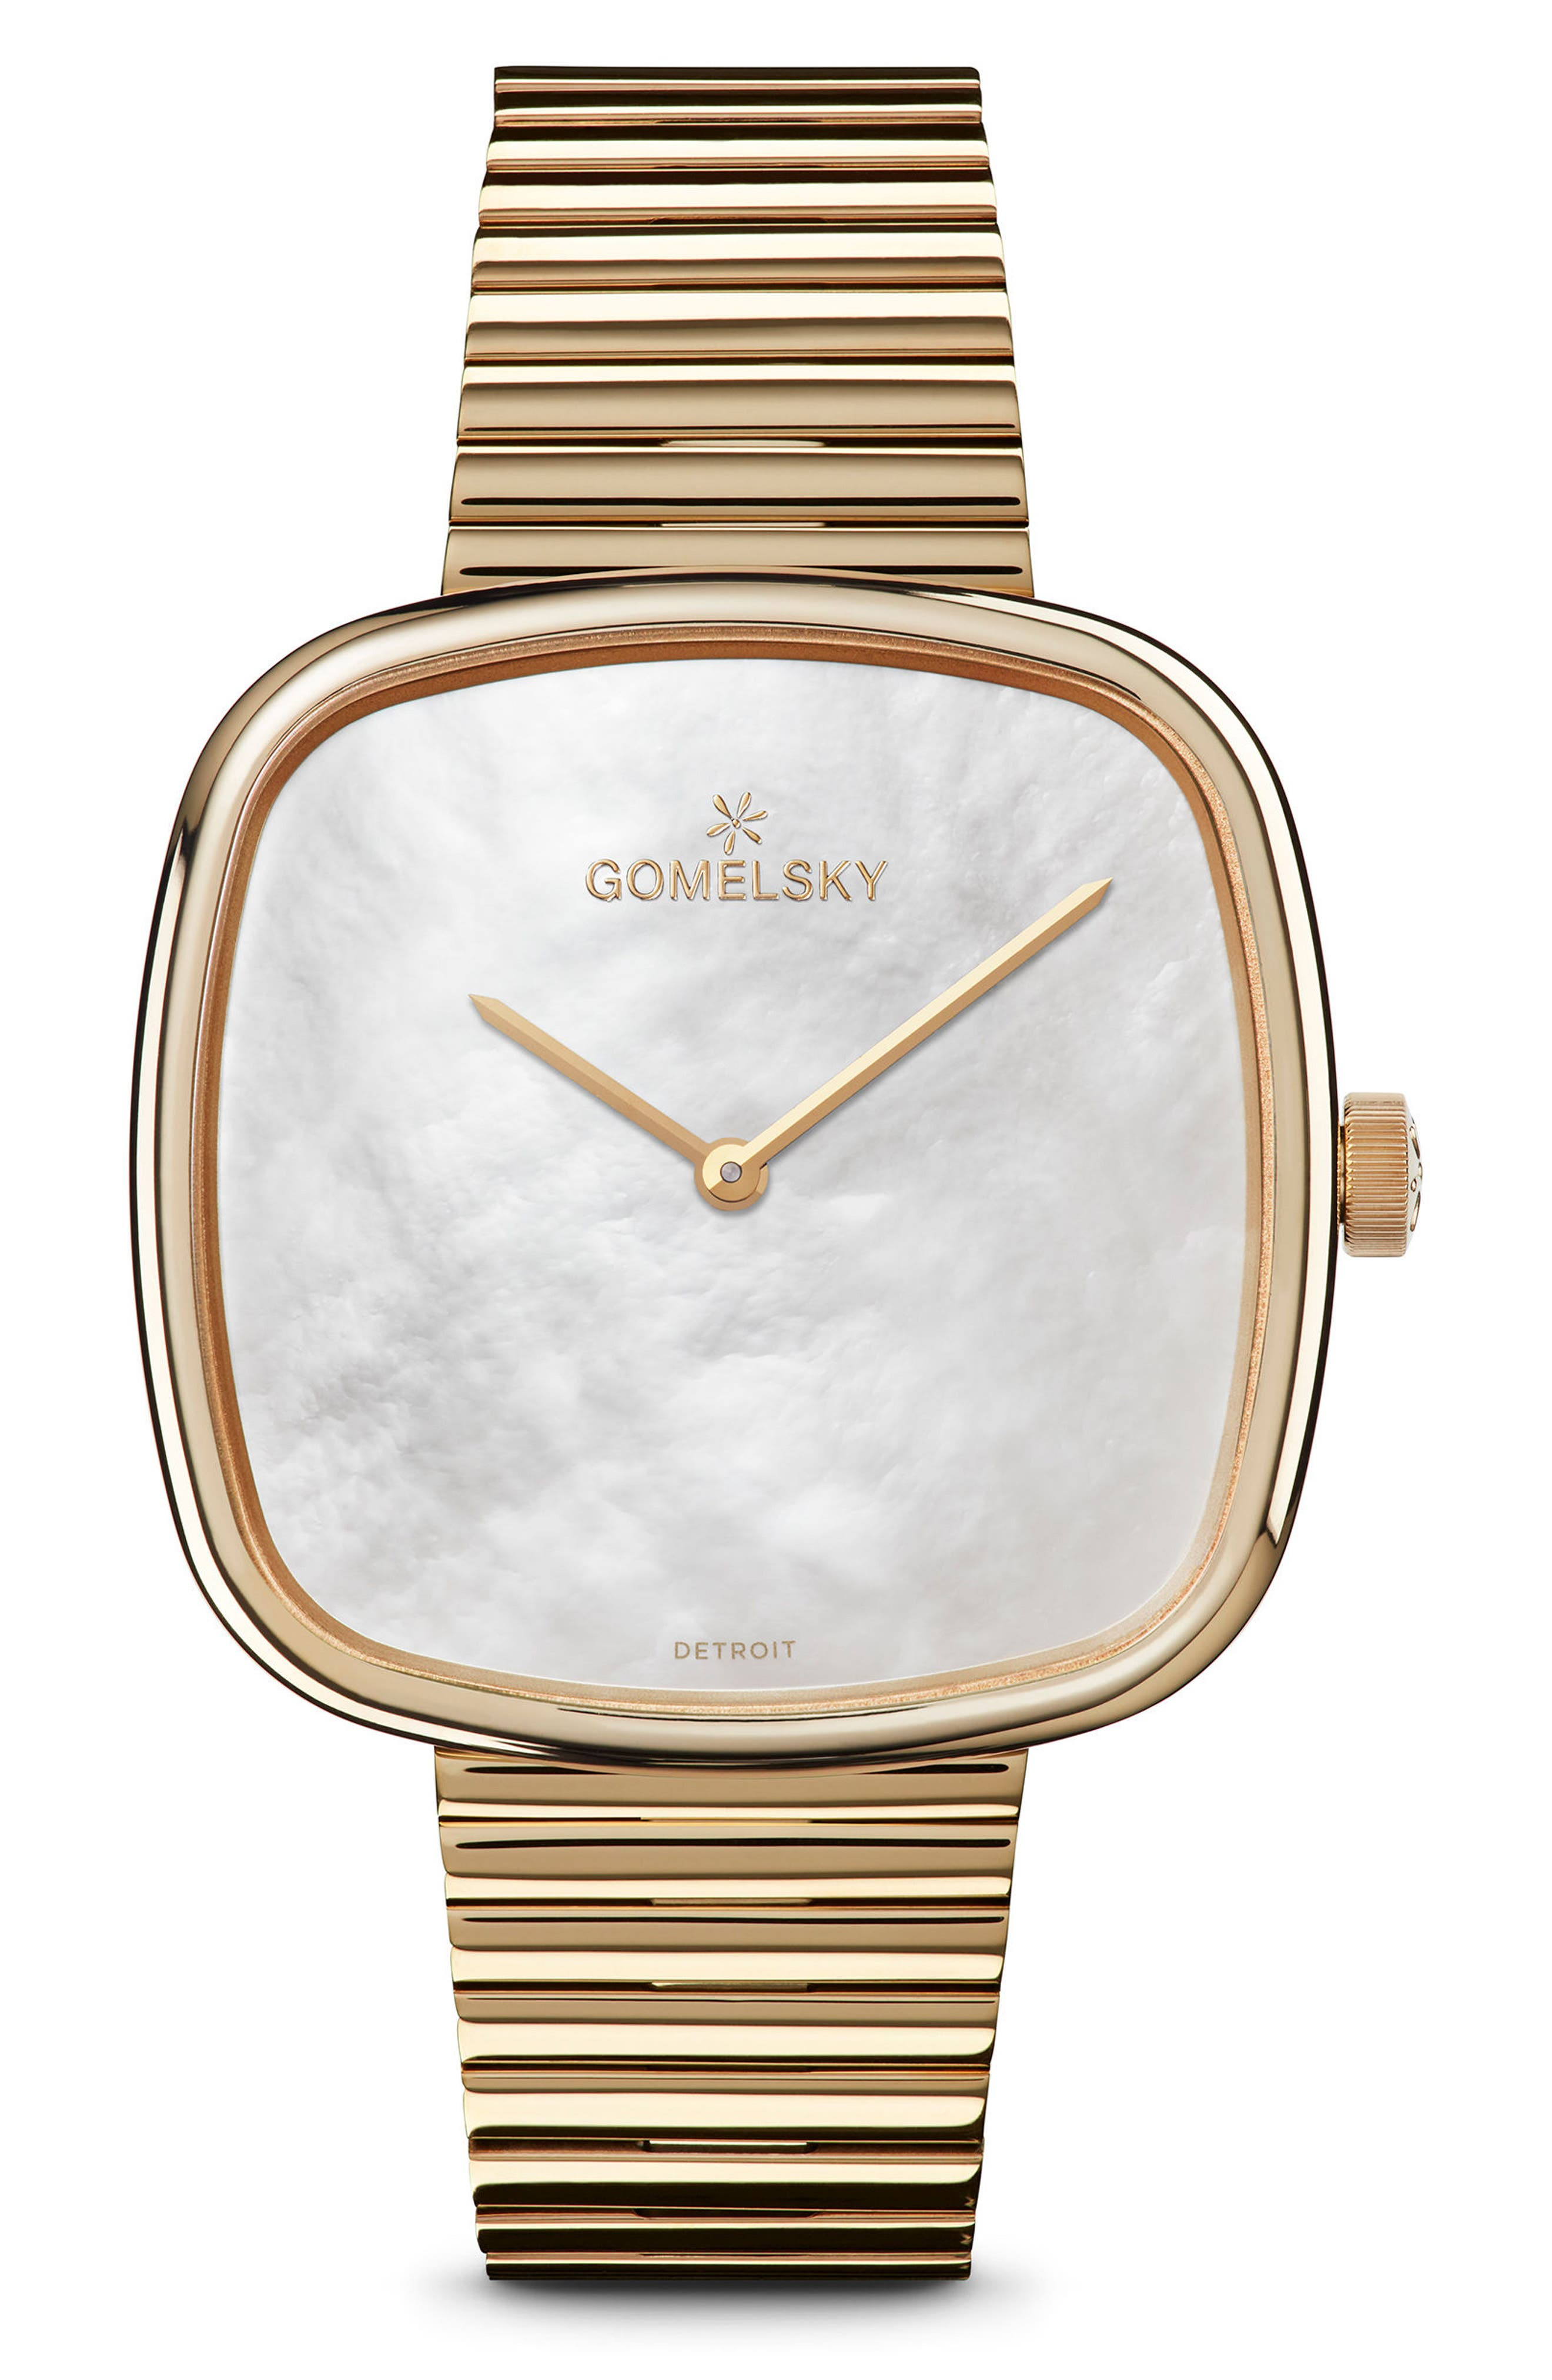 Image of Gomelsky by Shinola Women's Eppie Sneed Mother of Pearl Bracelet Watch, 40mm x 40mm